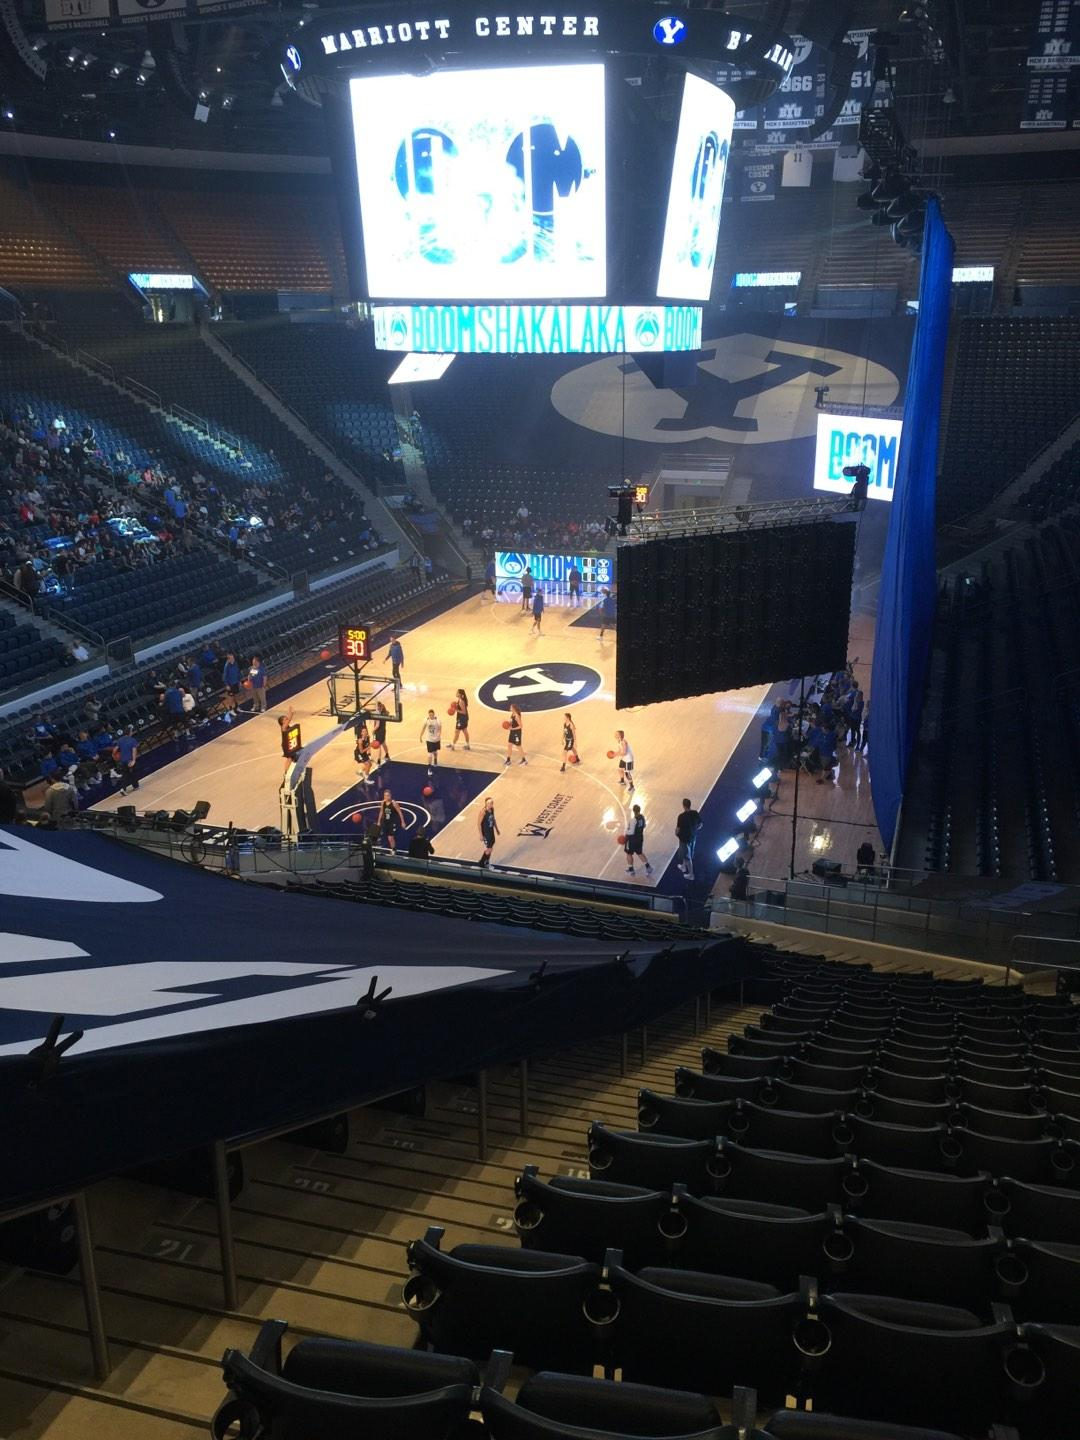 Marriott Center Section 2 Row 25 Seat 18